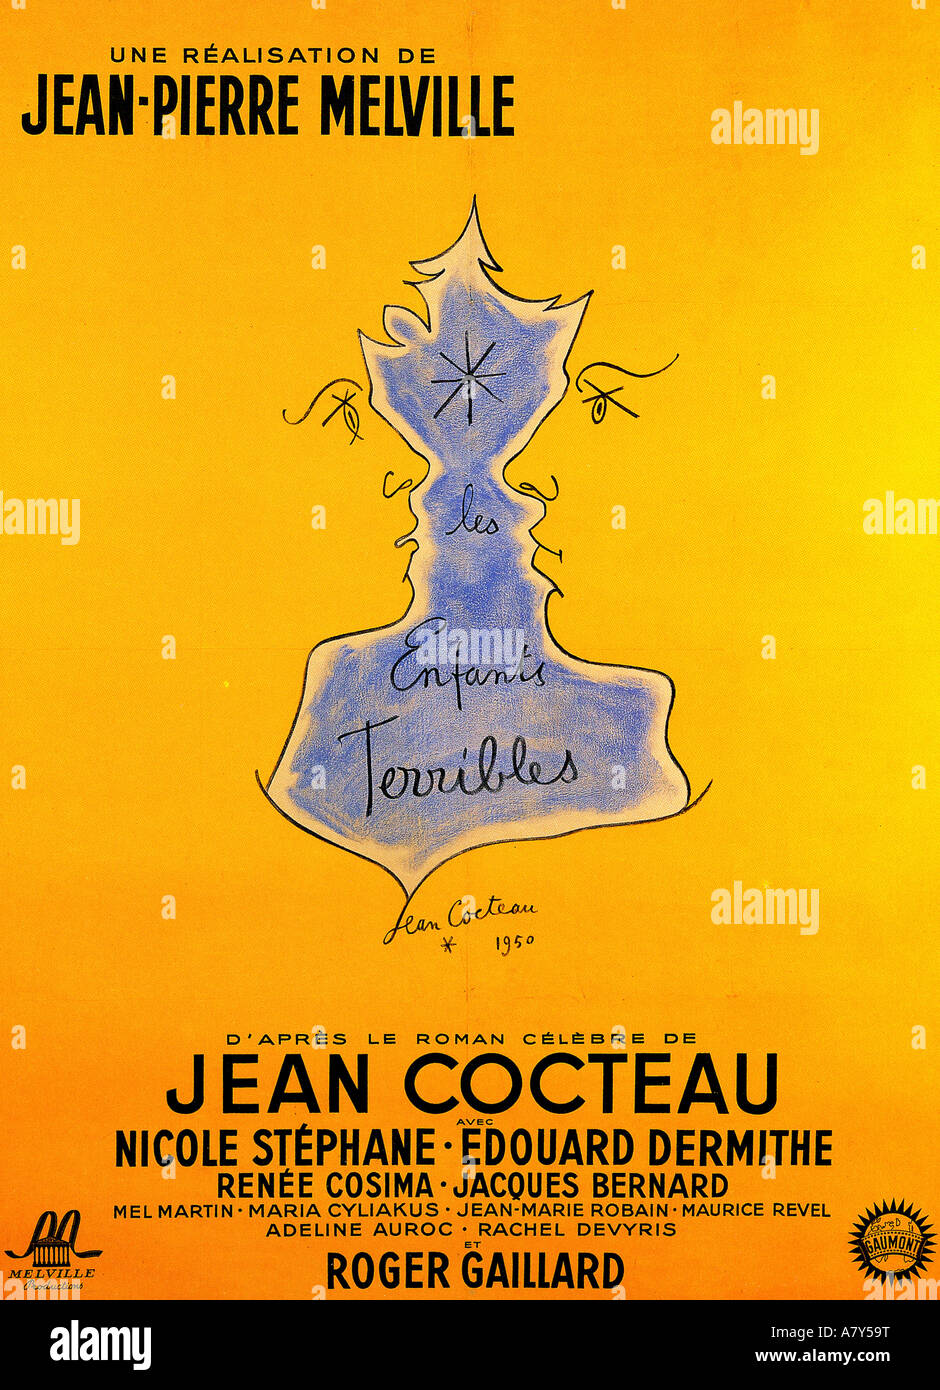 LES ENFANTS TERRIBLE poster for 1950 film based on novel by Jean Cocteau - Stock Image